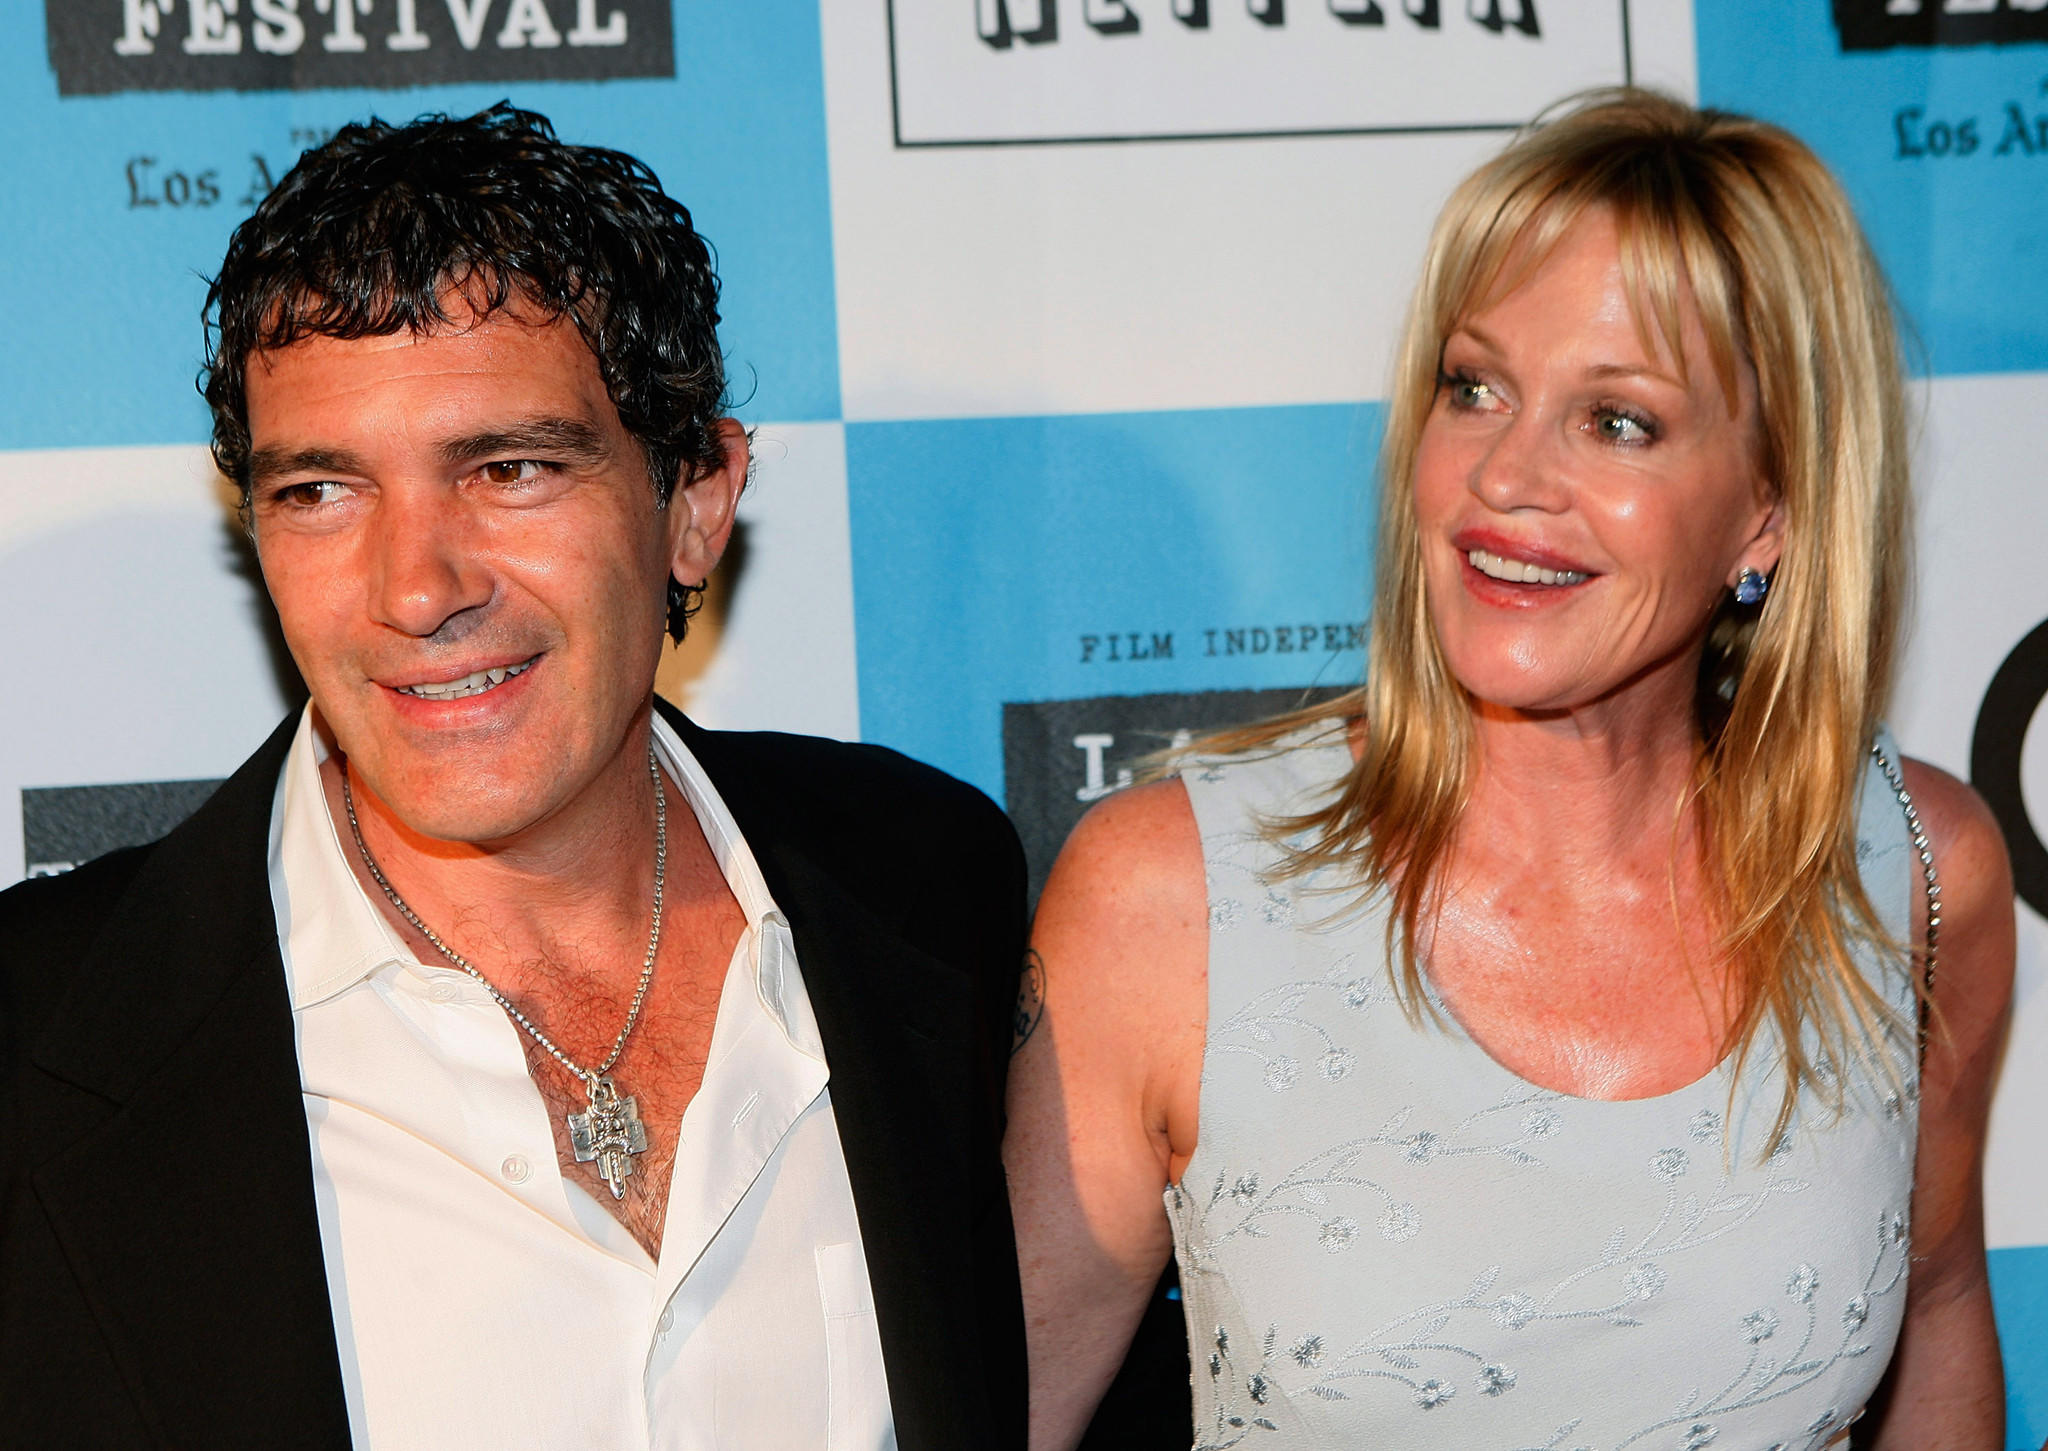 Melanie Griffith and Antonio Banderas have filed for divorce after 18 years of marriage.